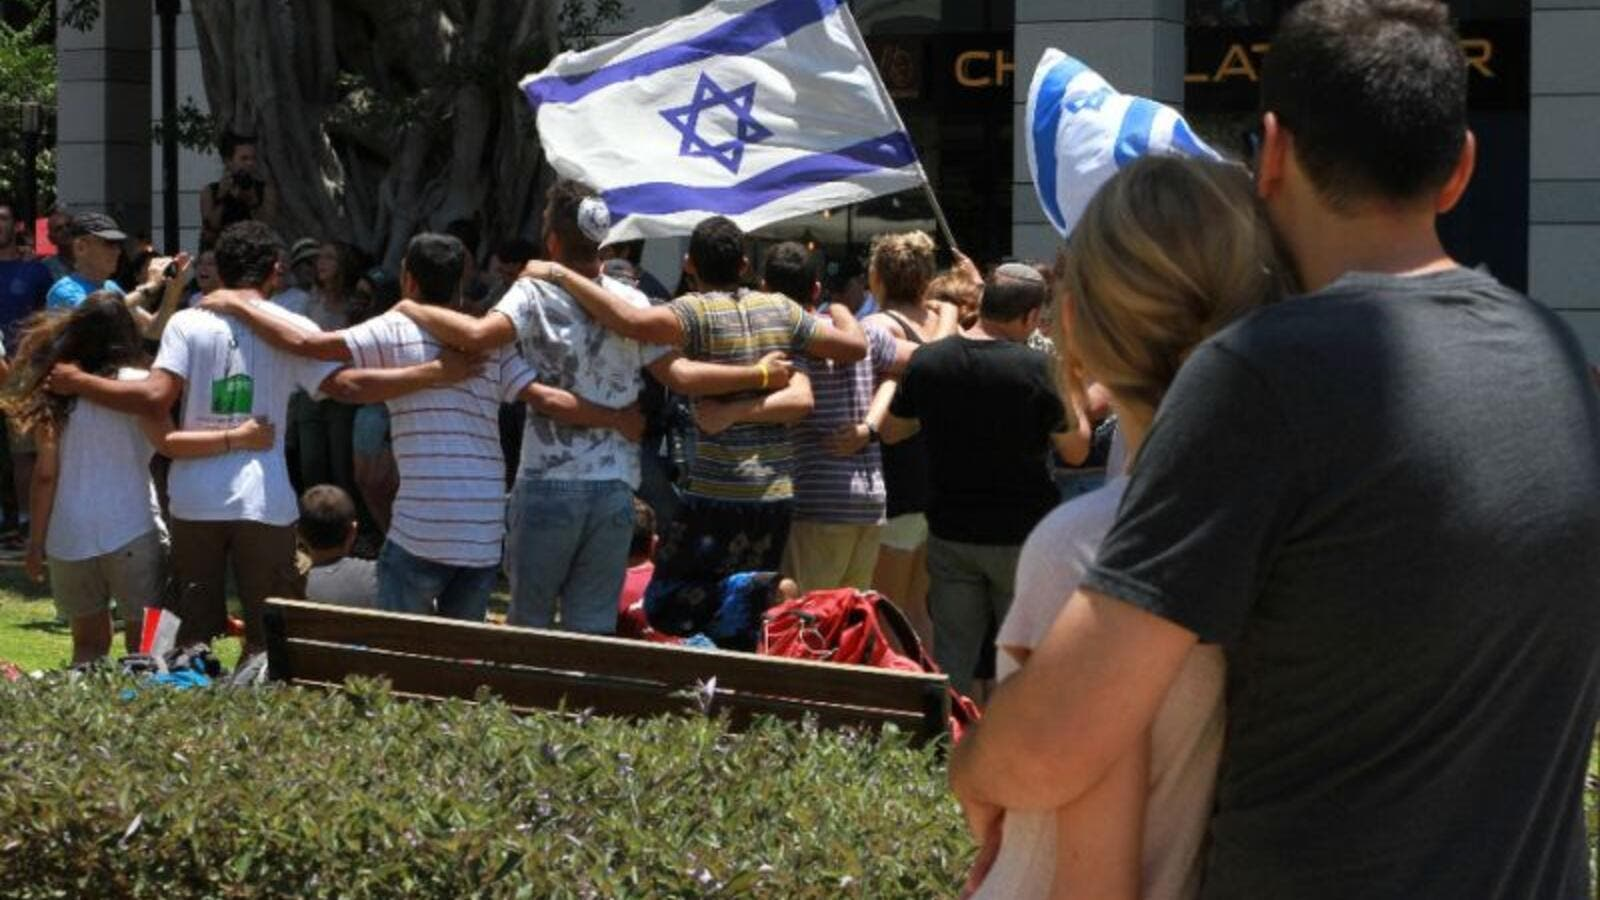 Israeli rightwing students rally against Palestinians (AFP/File Photo)